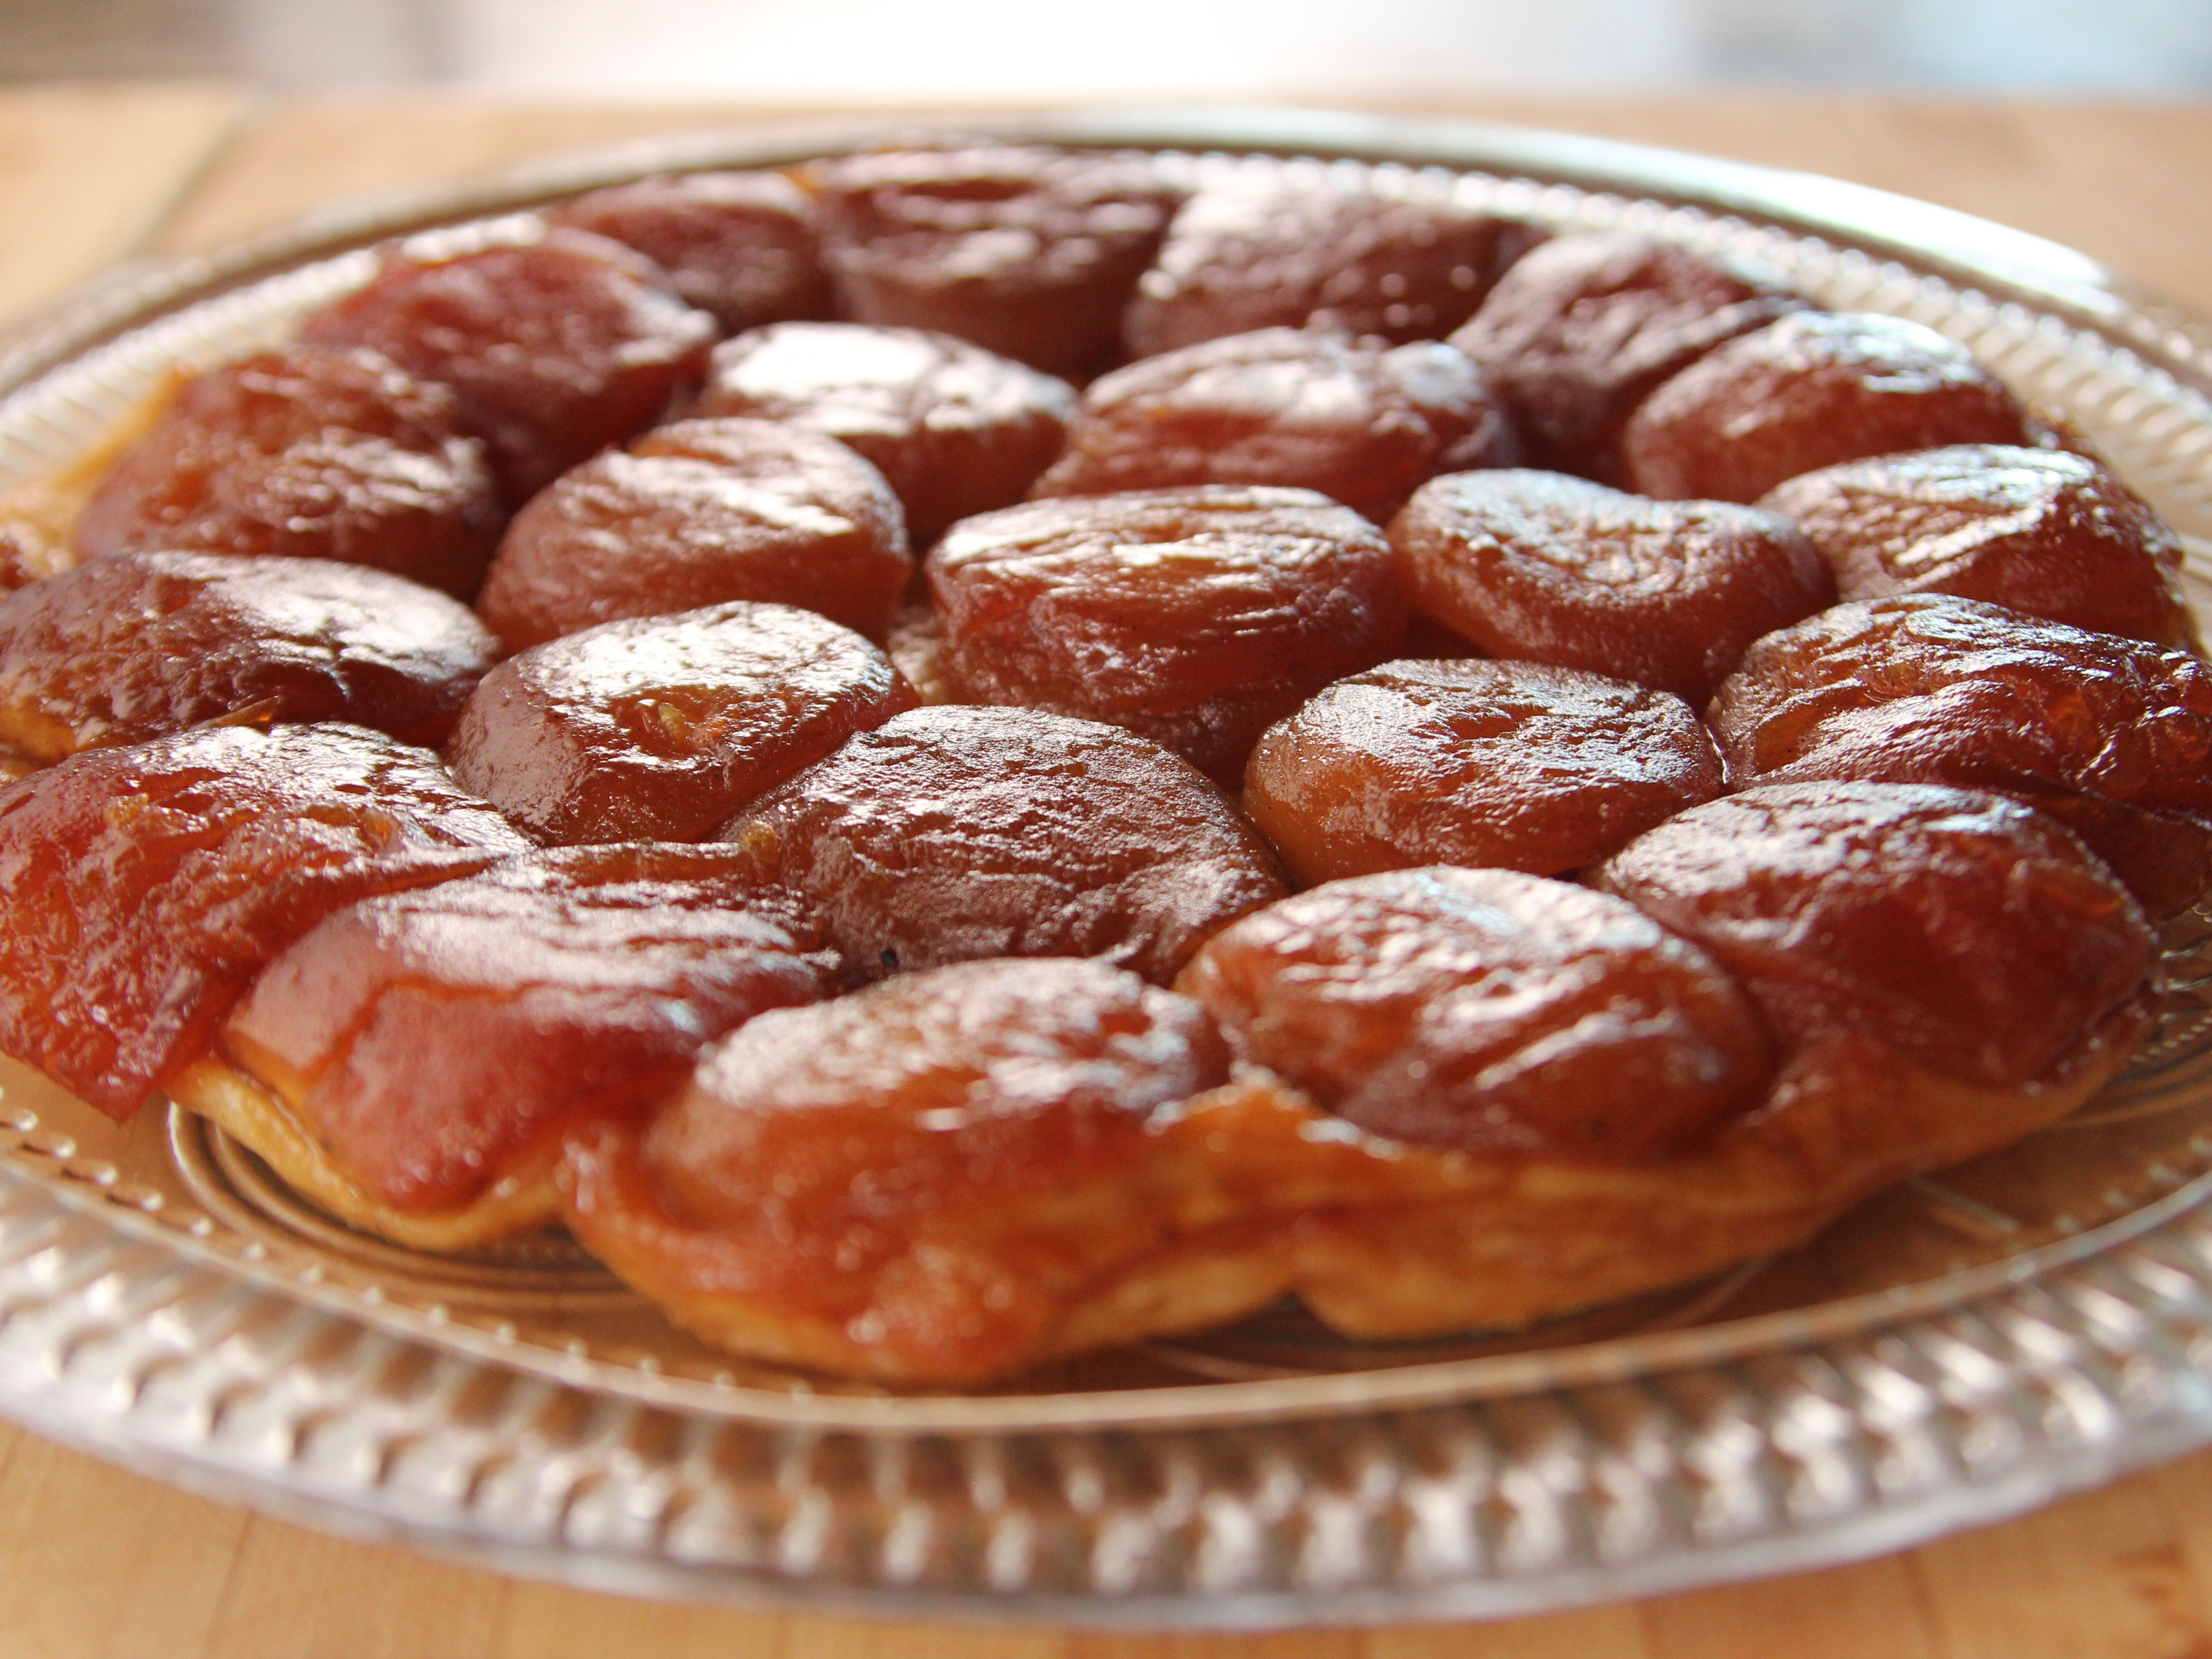 Tarte tatin recipe pioneer woman recipes and food apples tarte tatin recipe from ree drummond via food network forumfinder Image collections